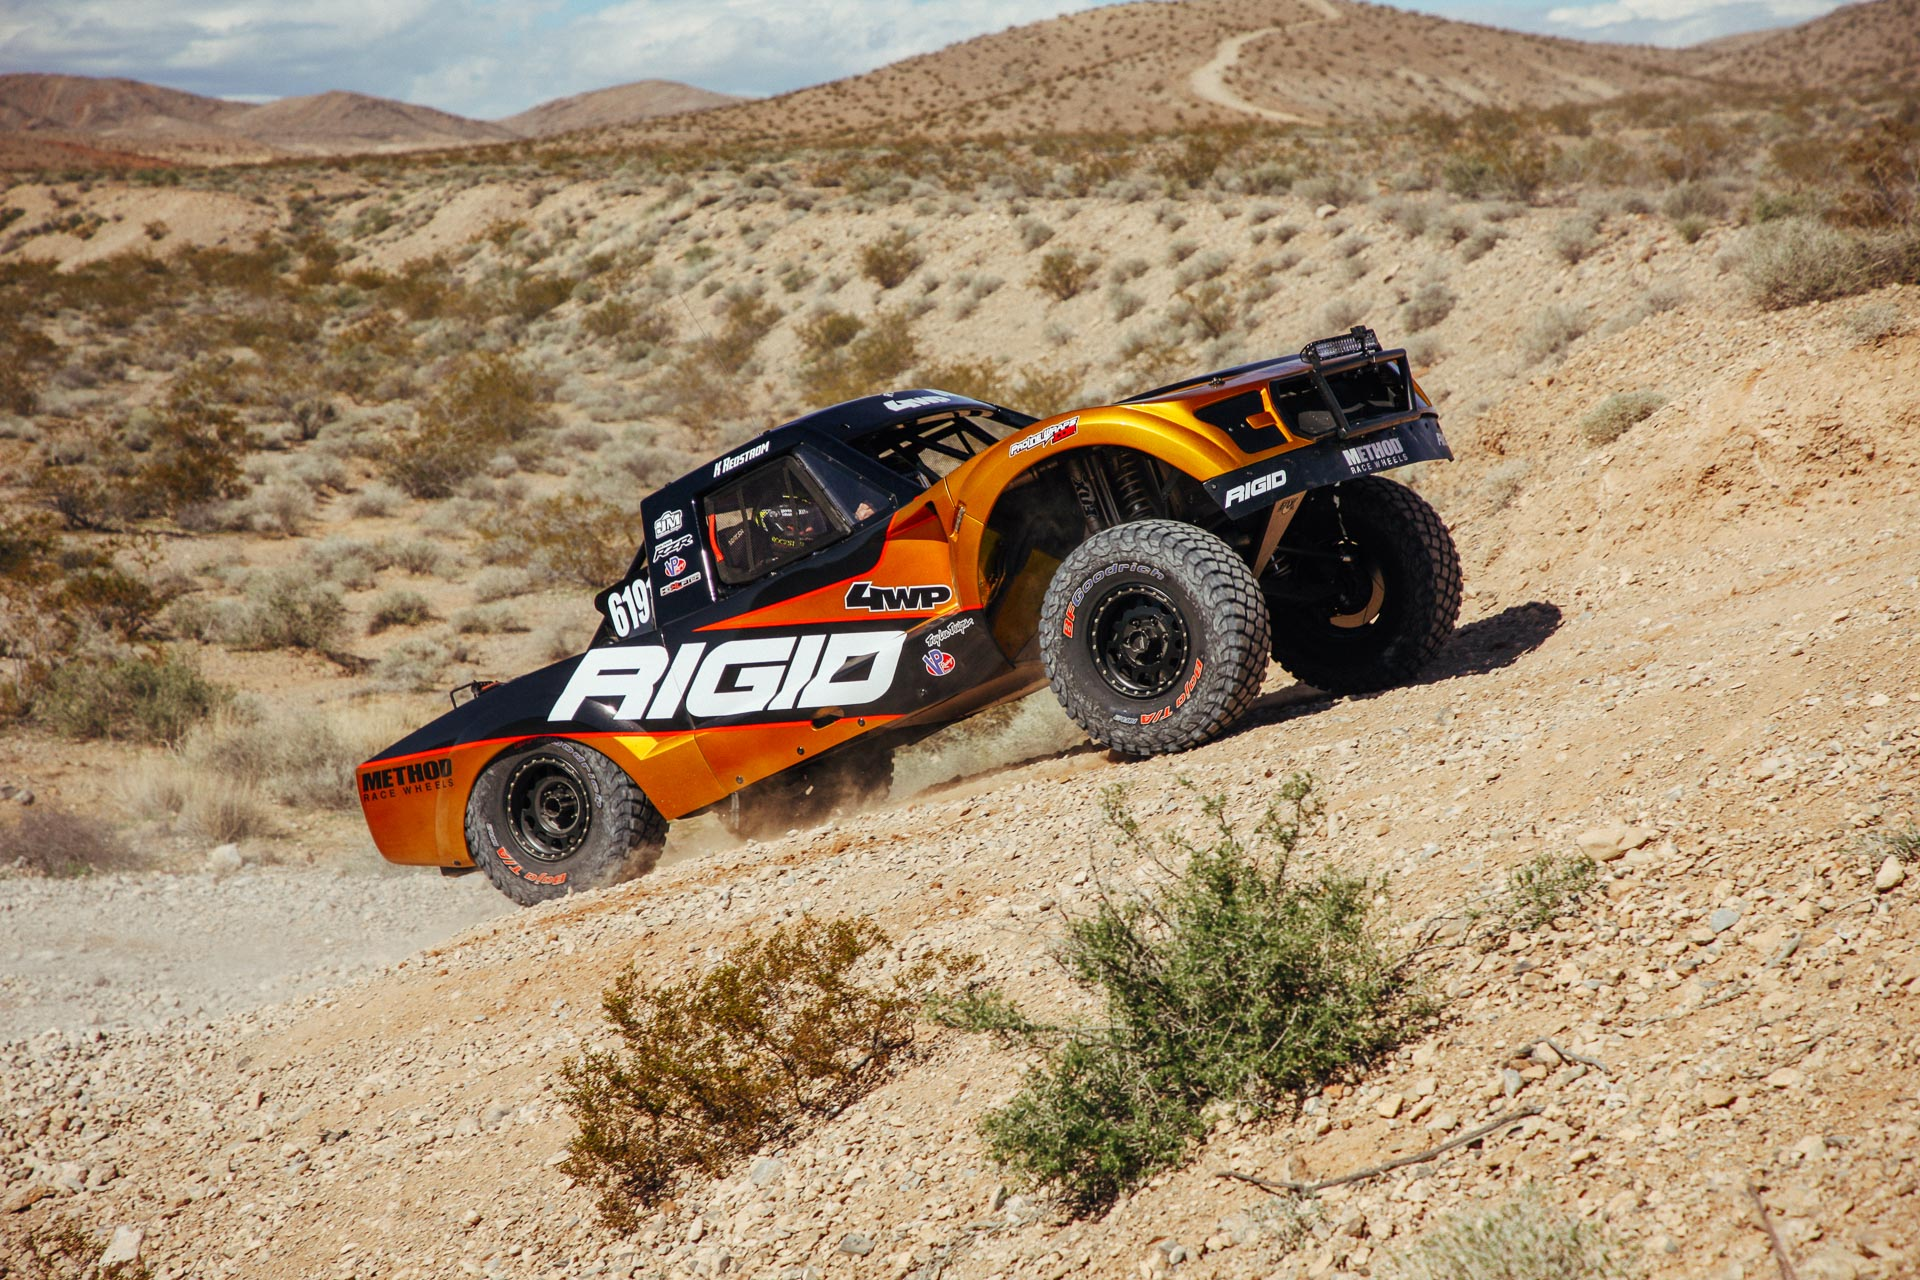 RIGID rig sponsored by Method Race Wheels and 4WP at MINT 400 2019